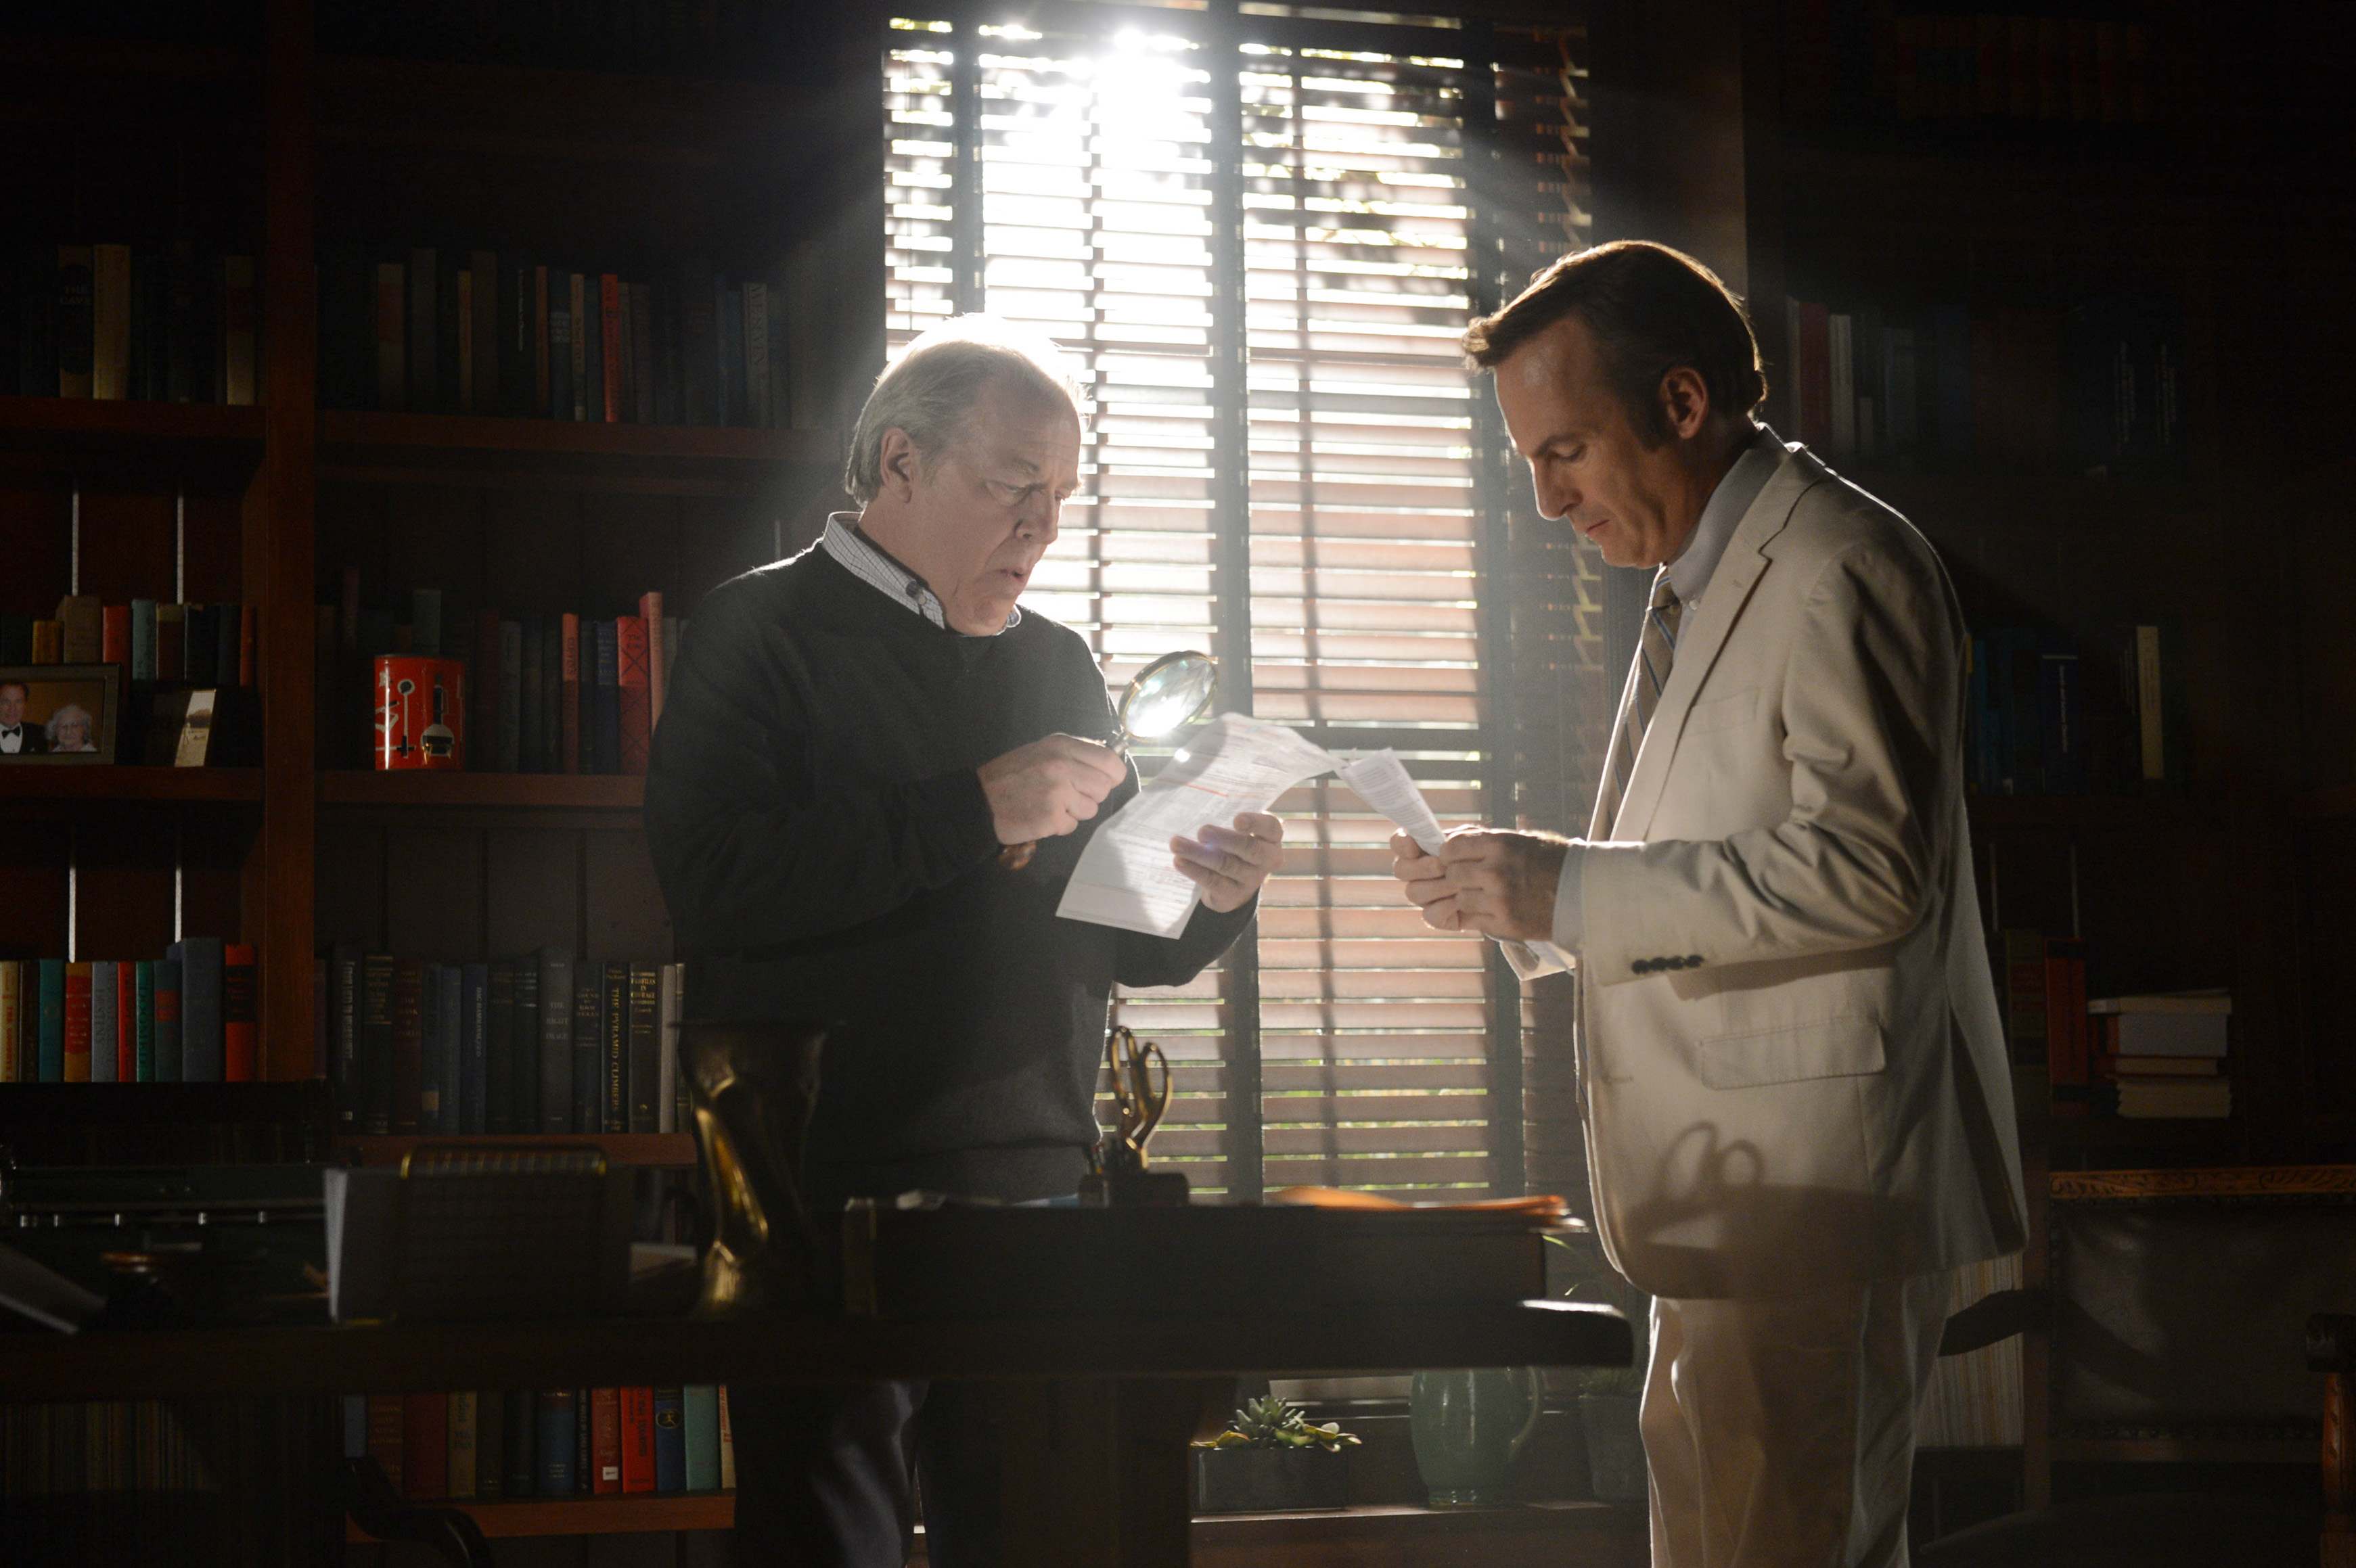 Better Call Saul Episode 108